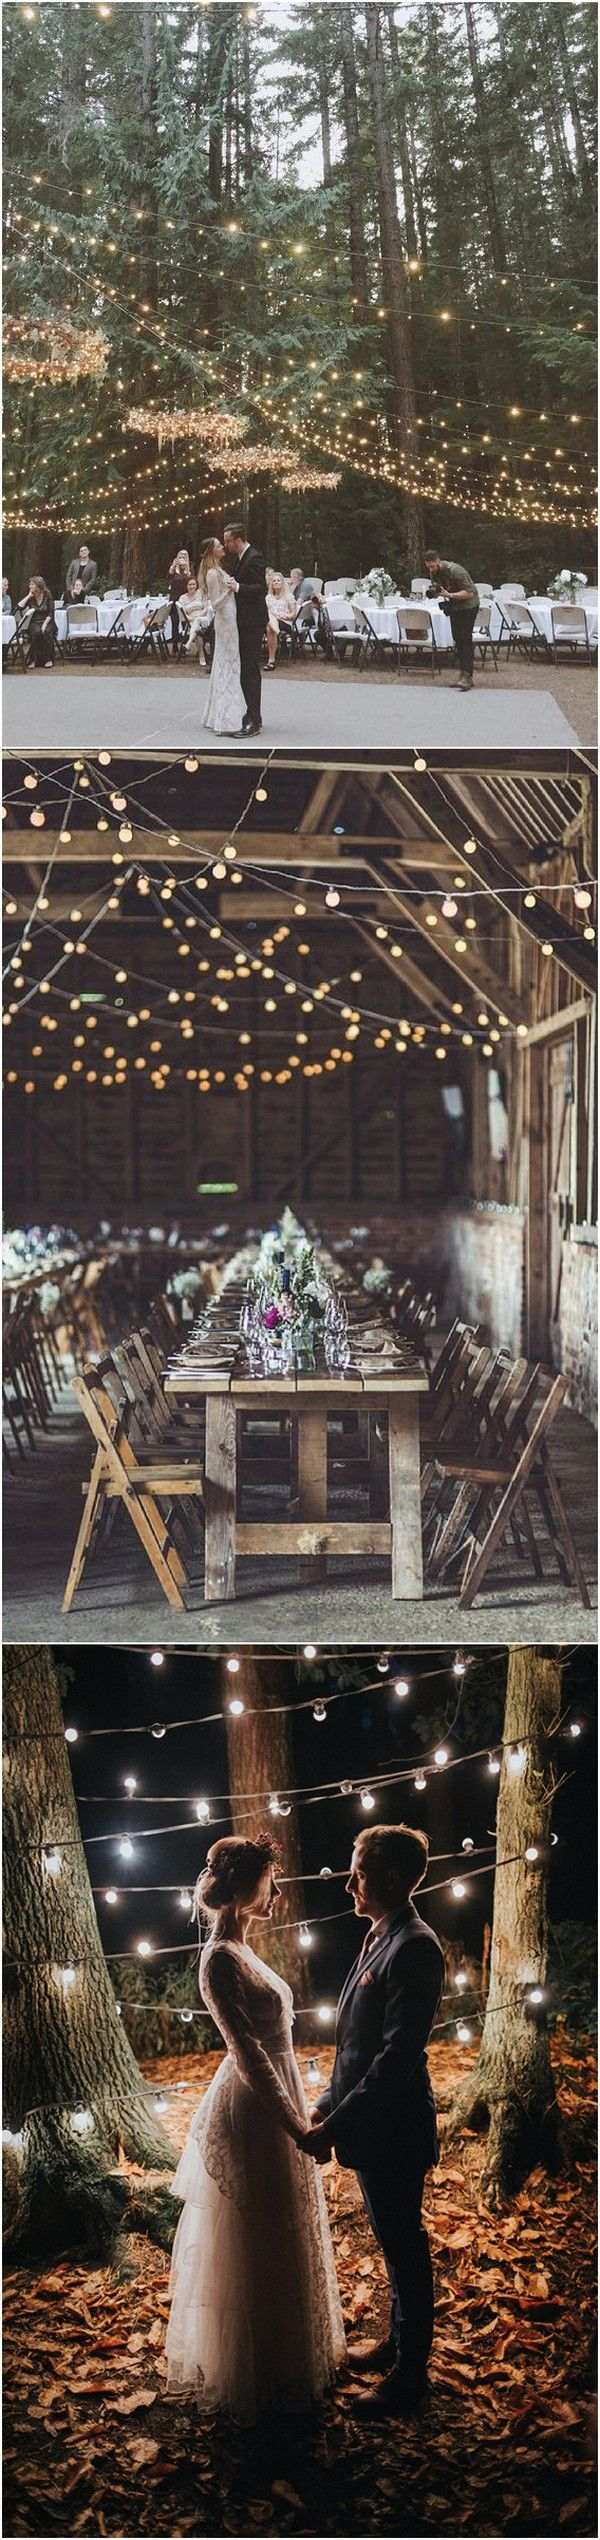 Wedding room decoration ideas 2018   Charming Boho Wedding Ideas for  Trends  Boho wedding